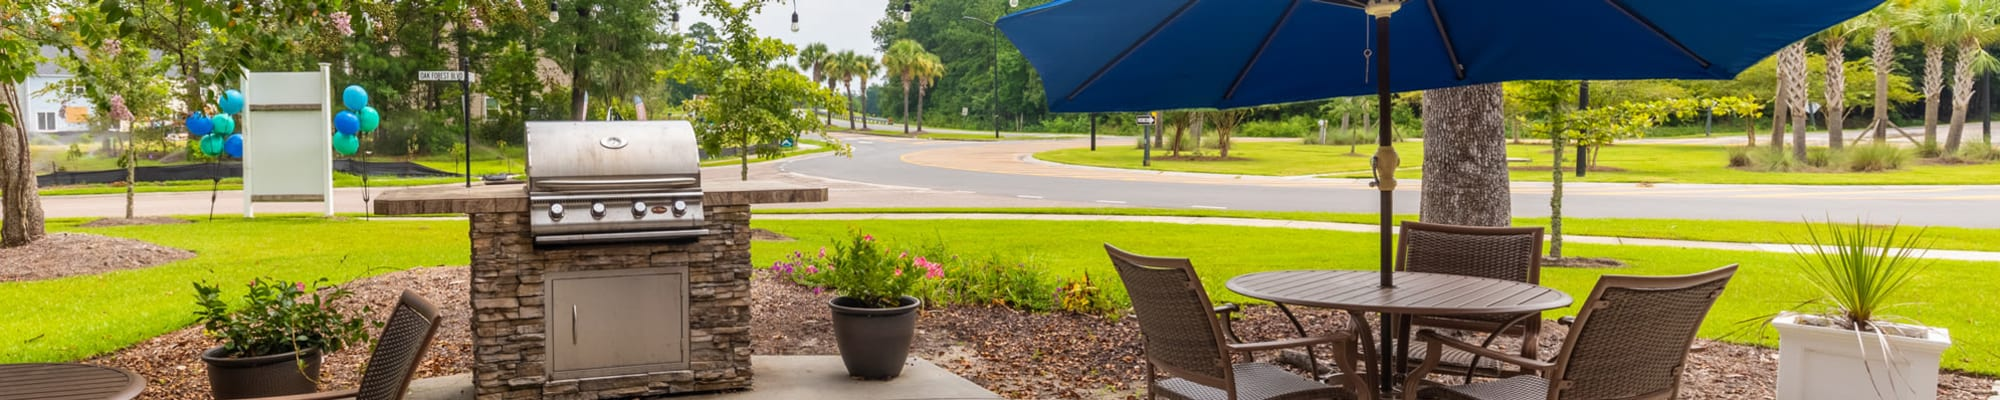 Our Community at Harmony at Wescott Plantation in Summerville, South Carolina